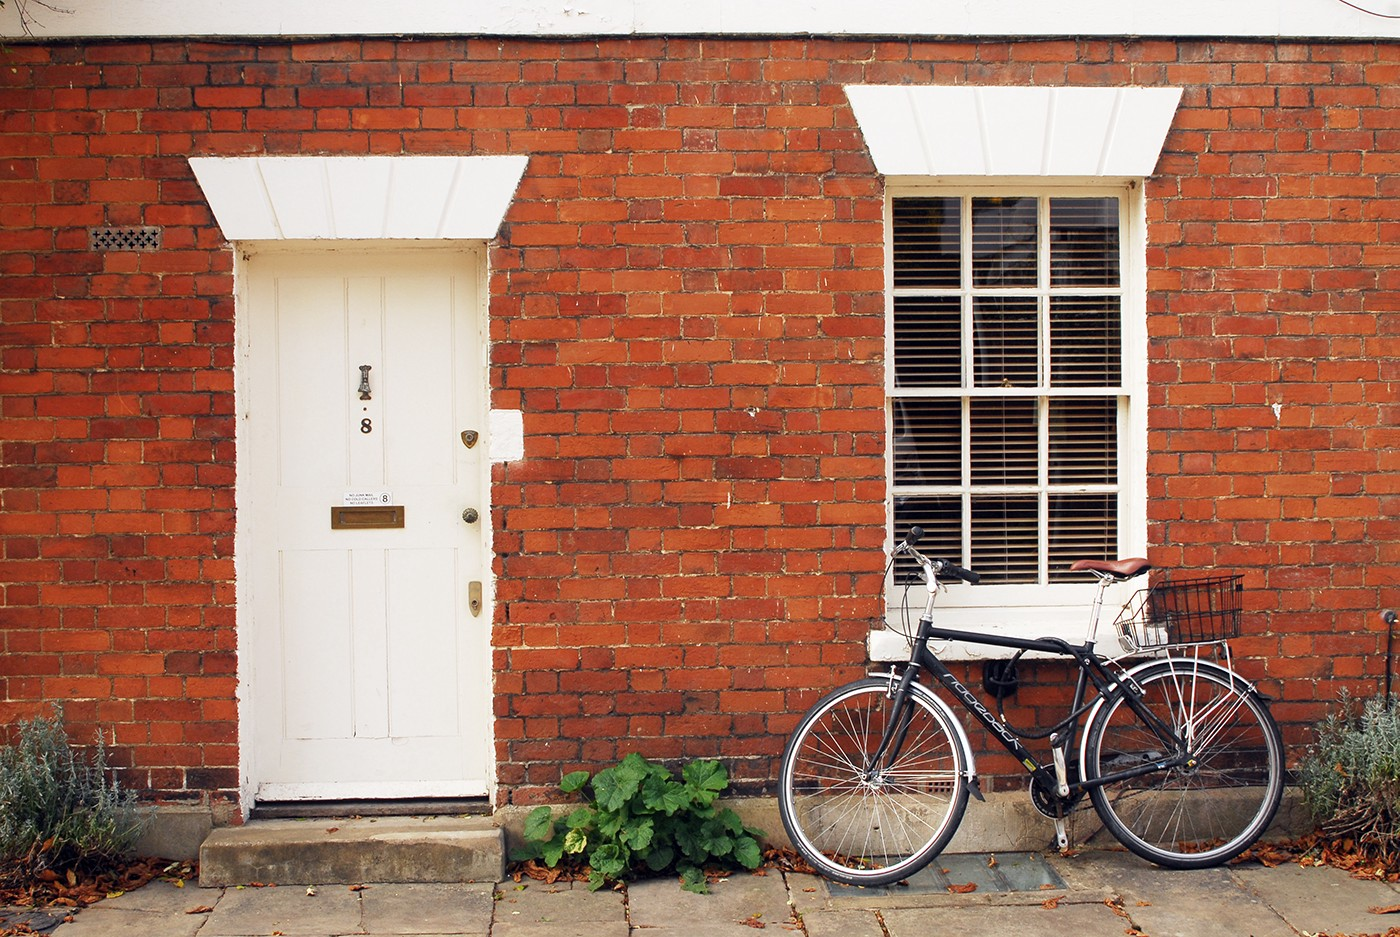 Red brick house with white door and bicycle leaning against the window